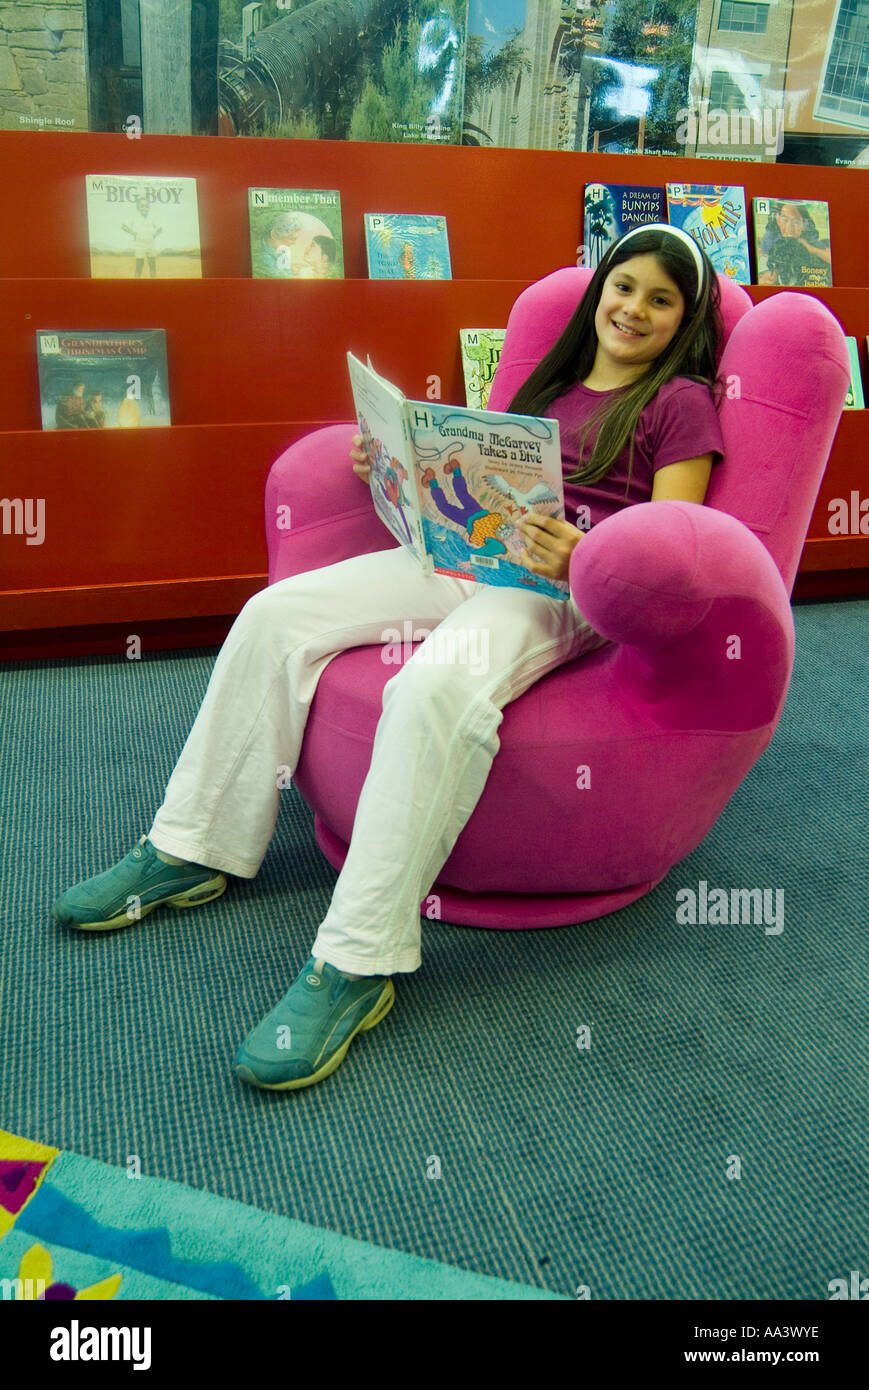 A Young Girl In A Library Sitting In A Fun Chair Shaped Like A Hand